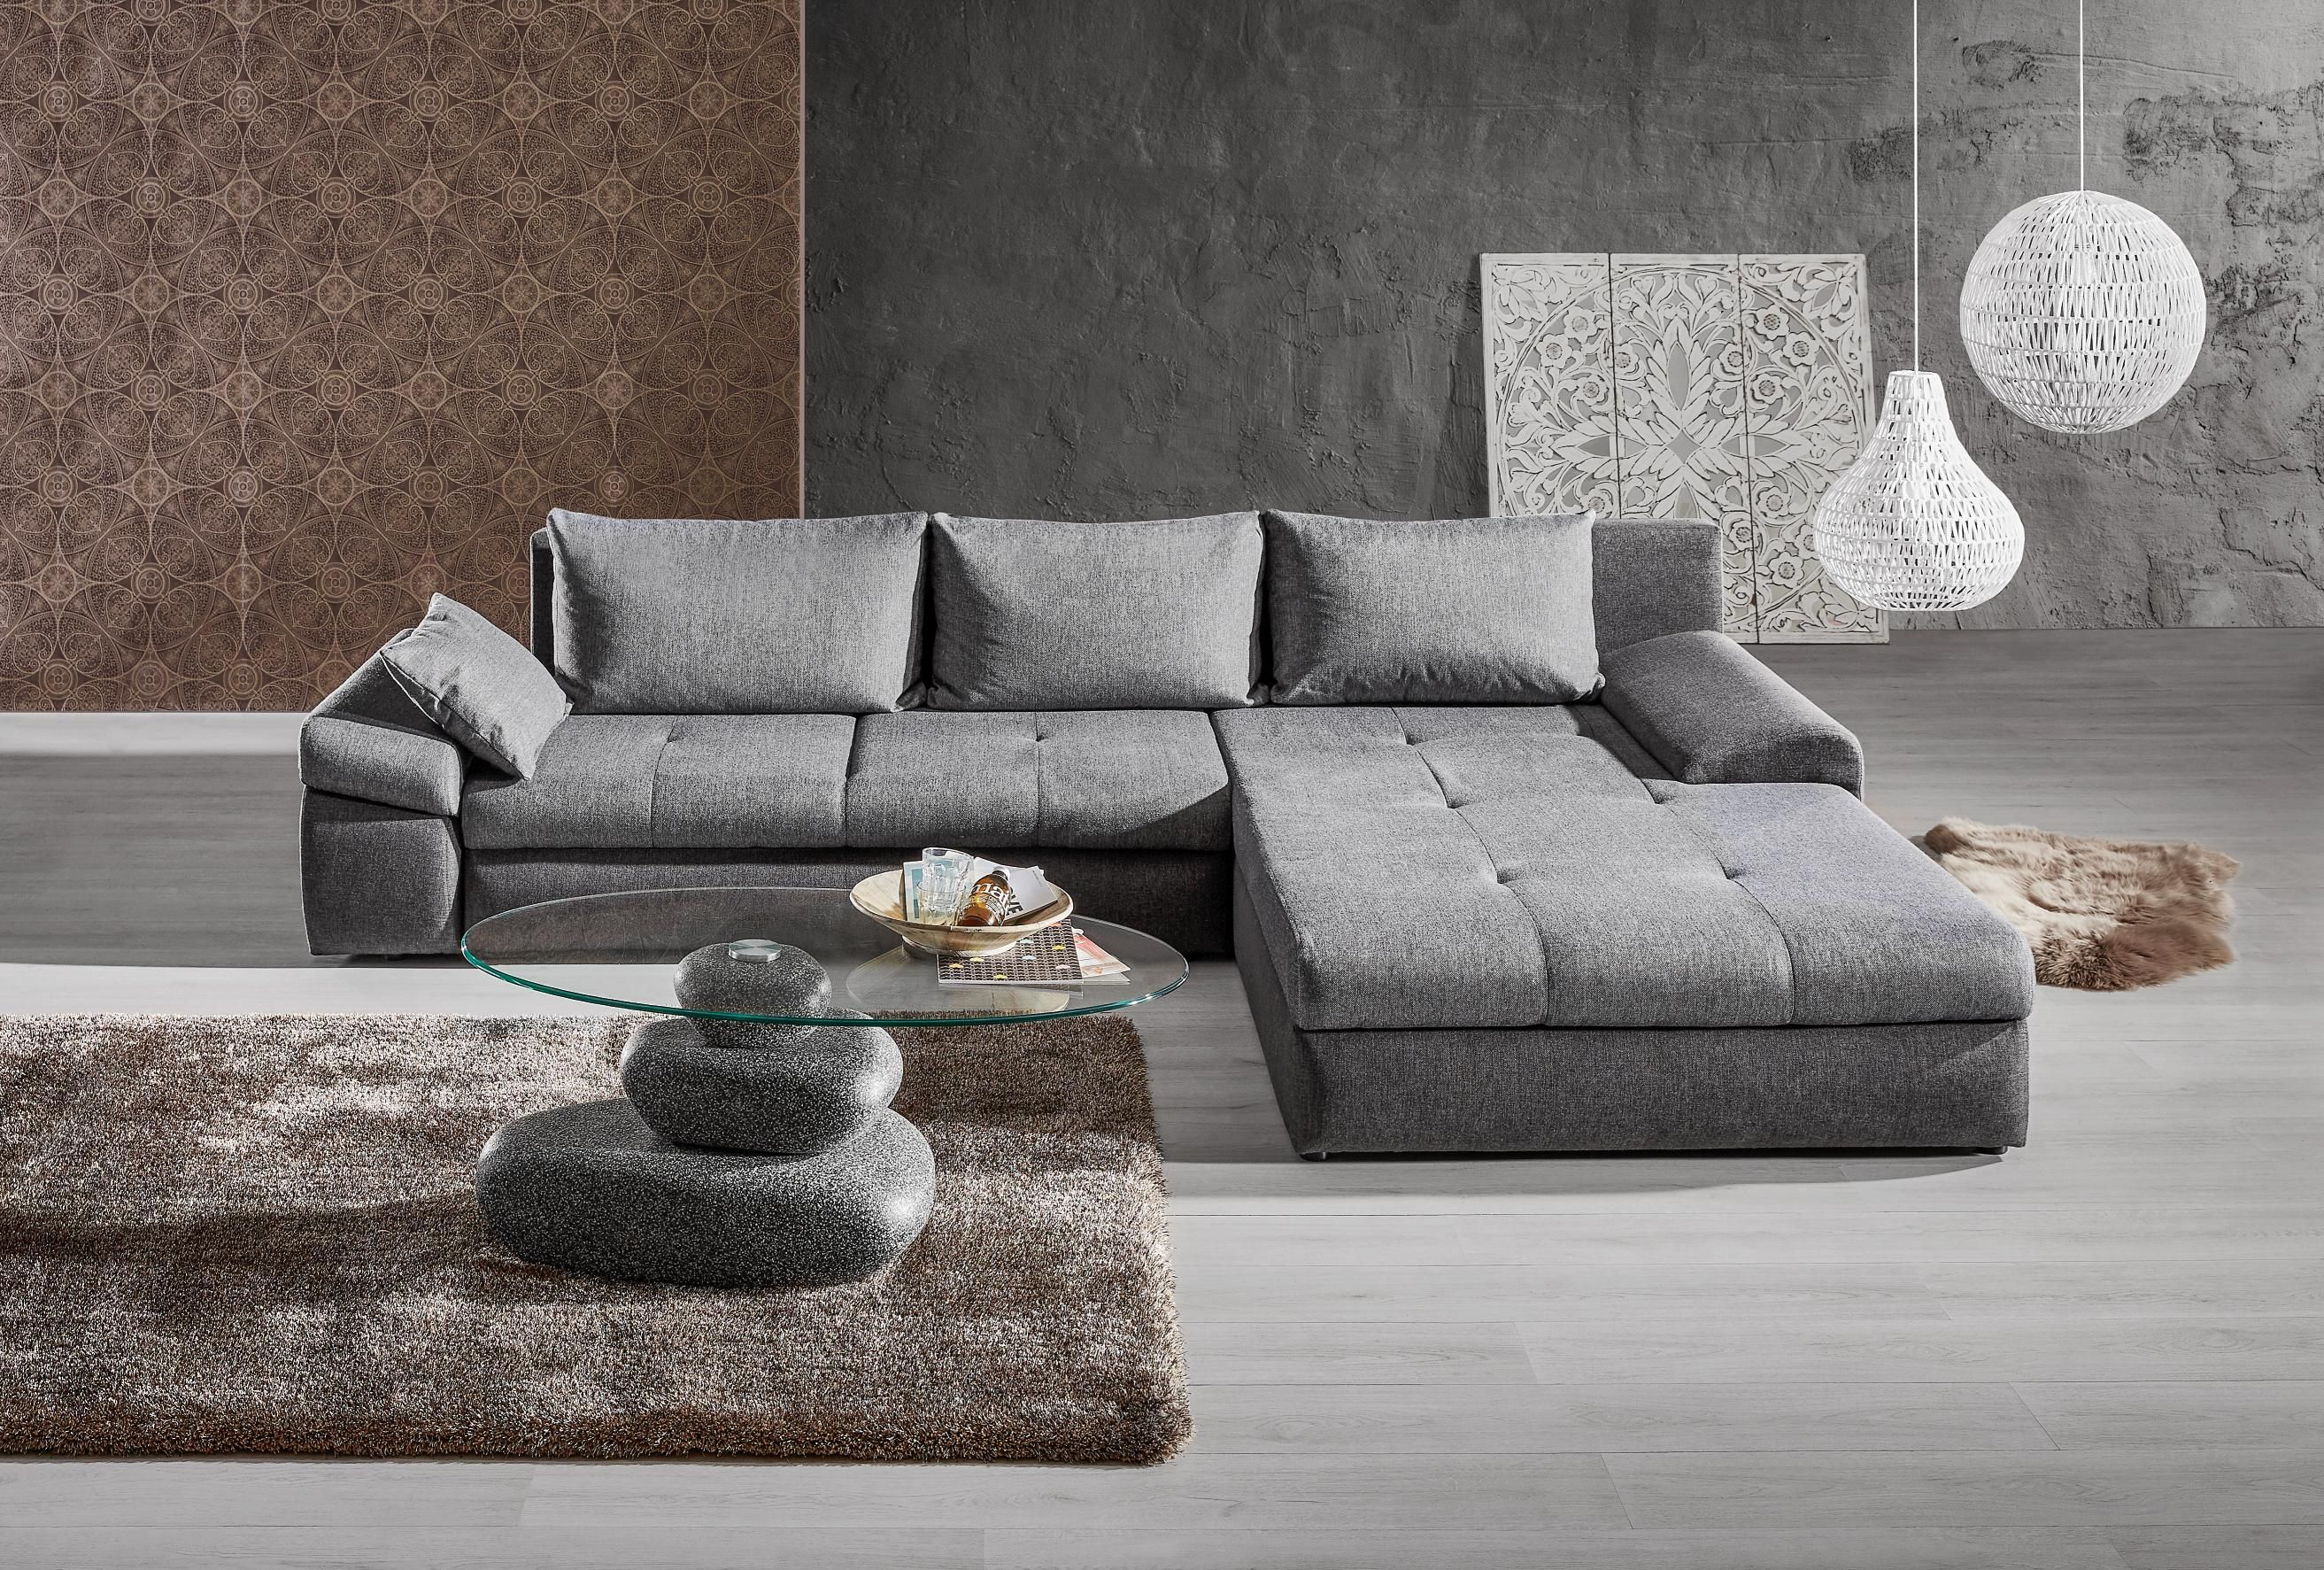 Wohnlandschaft In Textil Anthrazit Grau Sofa Pinterest